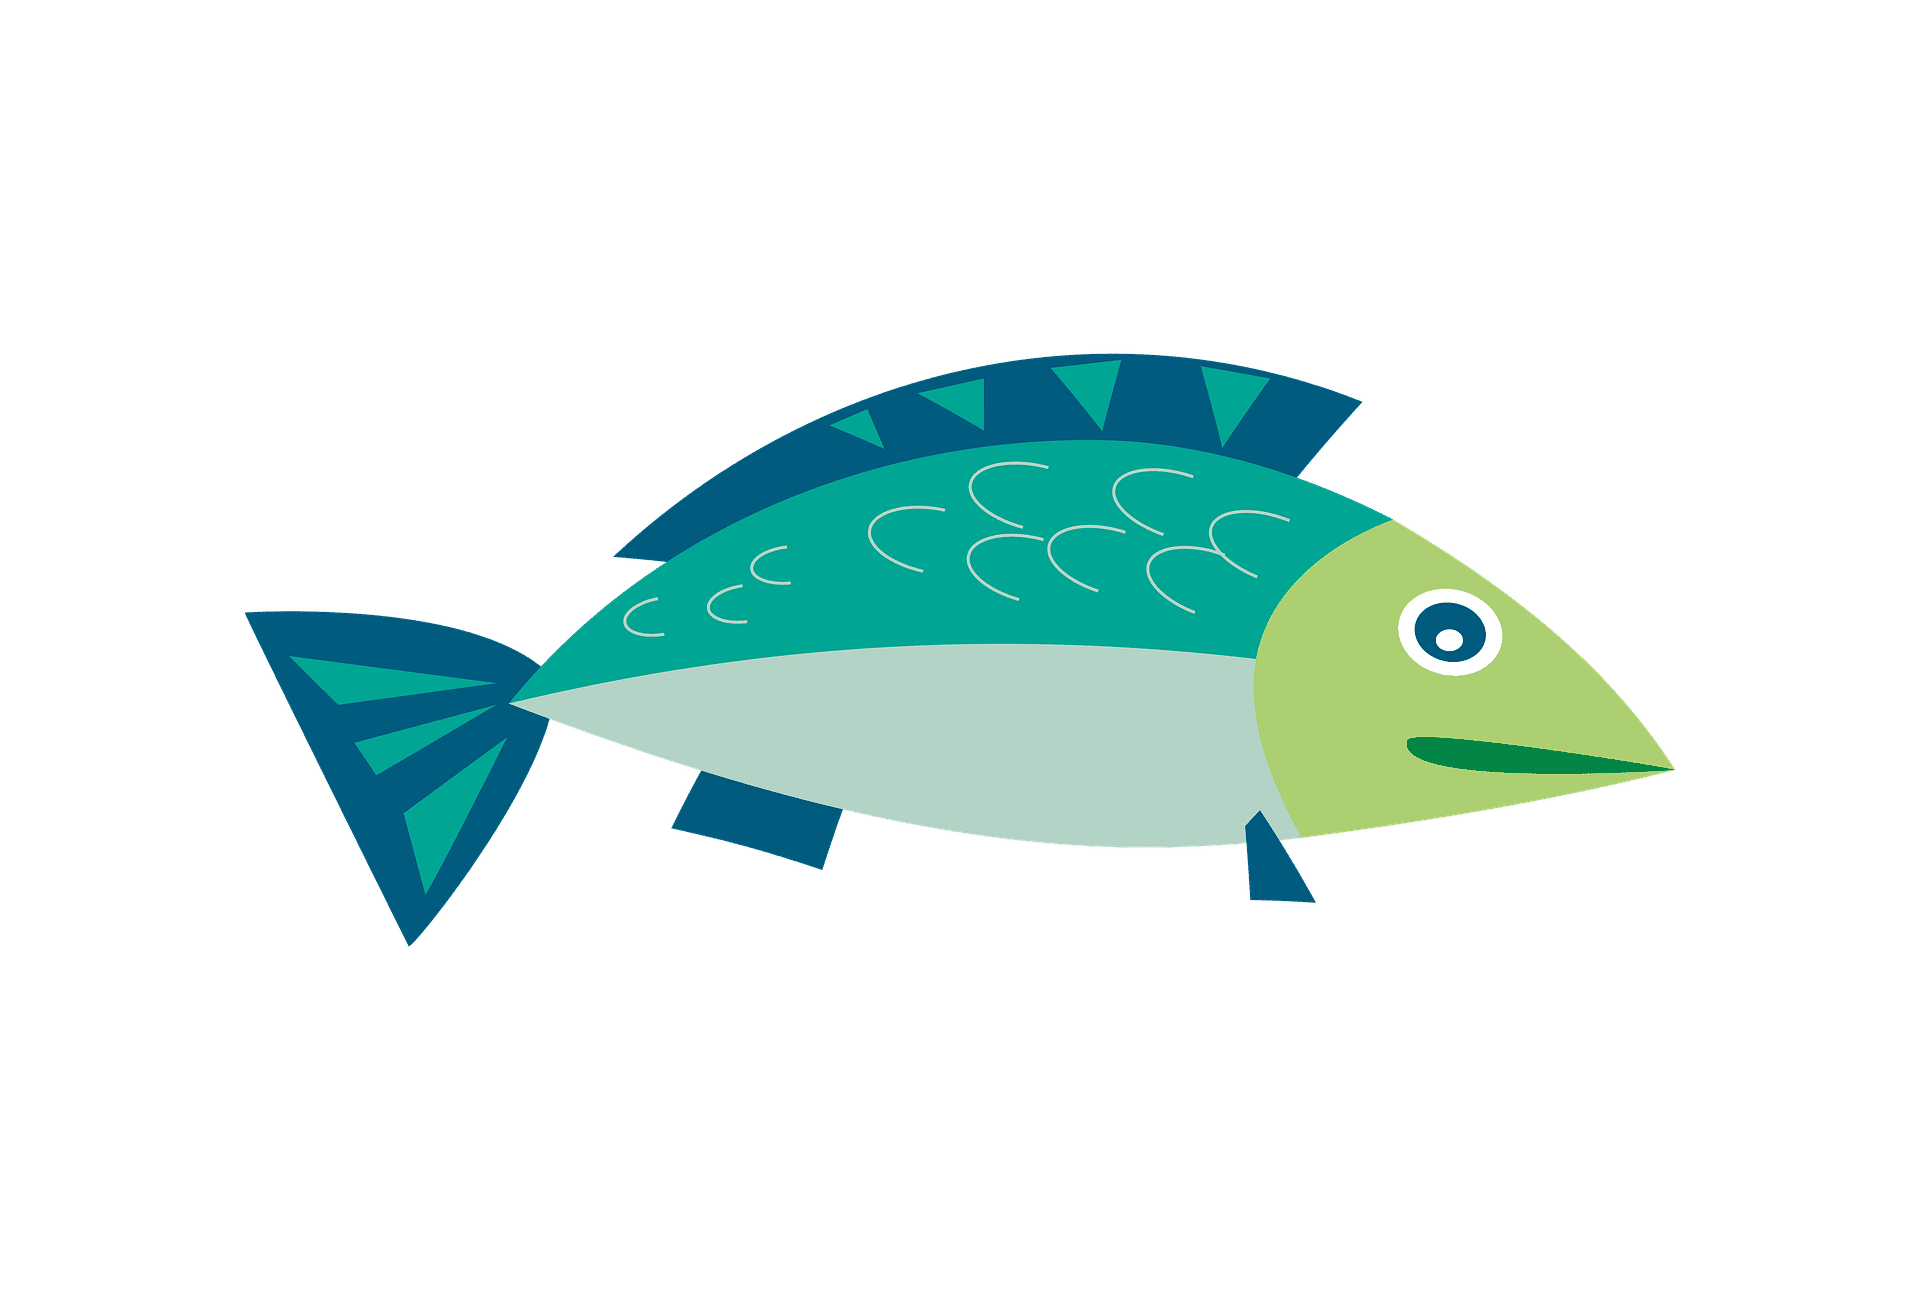 Fish images clipart free graphic download 5,443 Free Fish Clip Art Images and Graphics graphic download